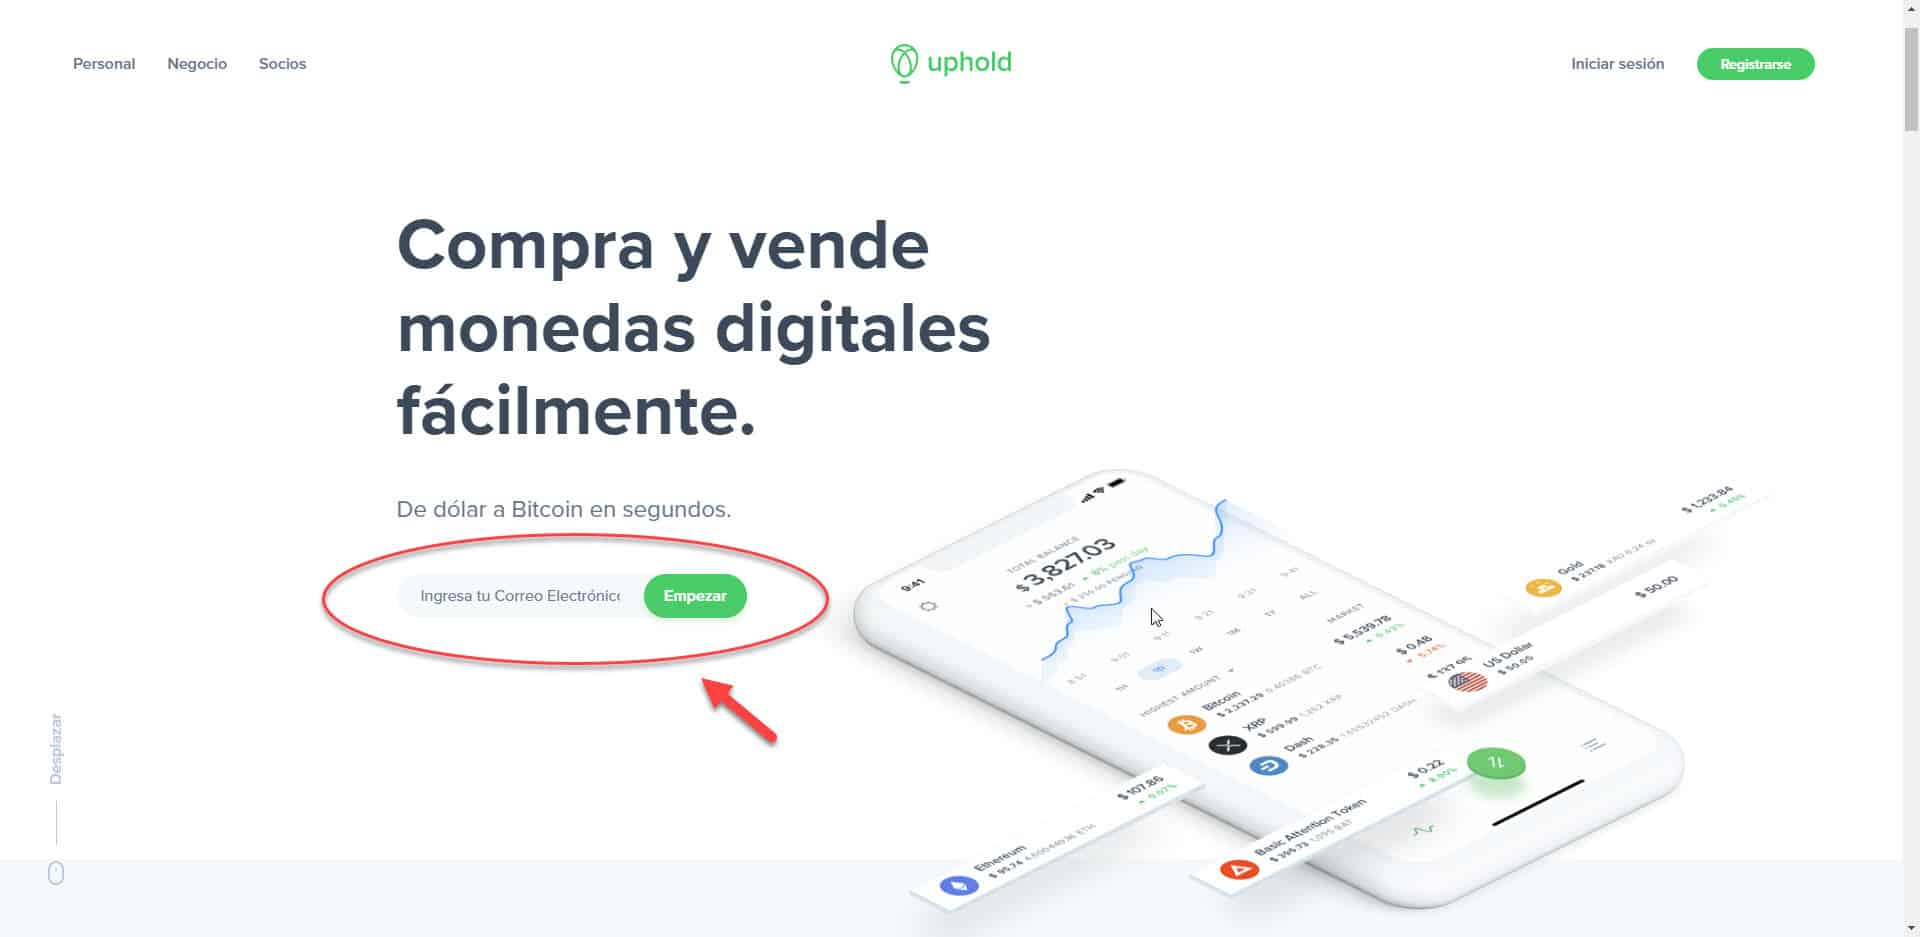 registrarse en uphold para utilizar bitcoin